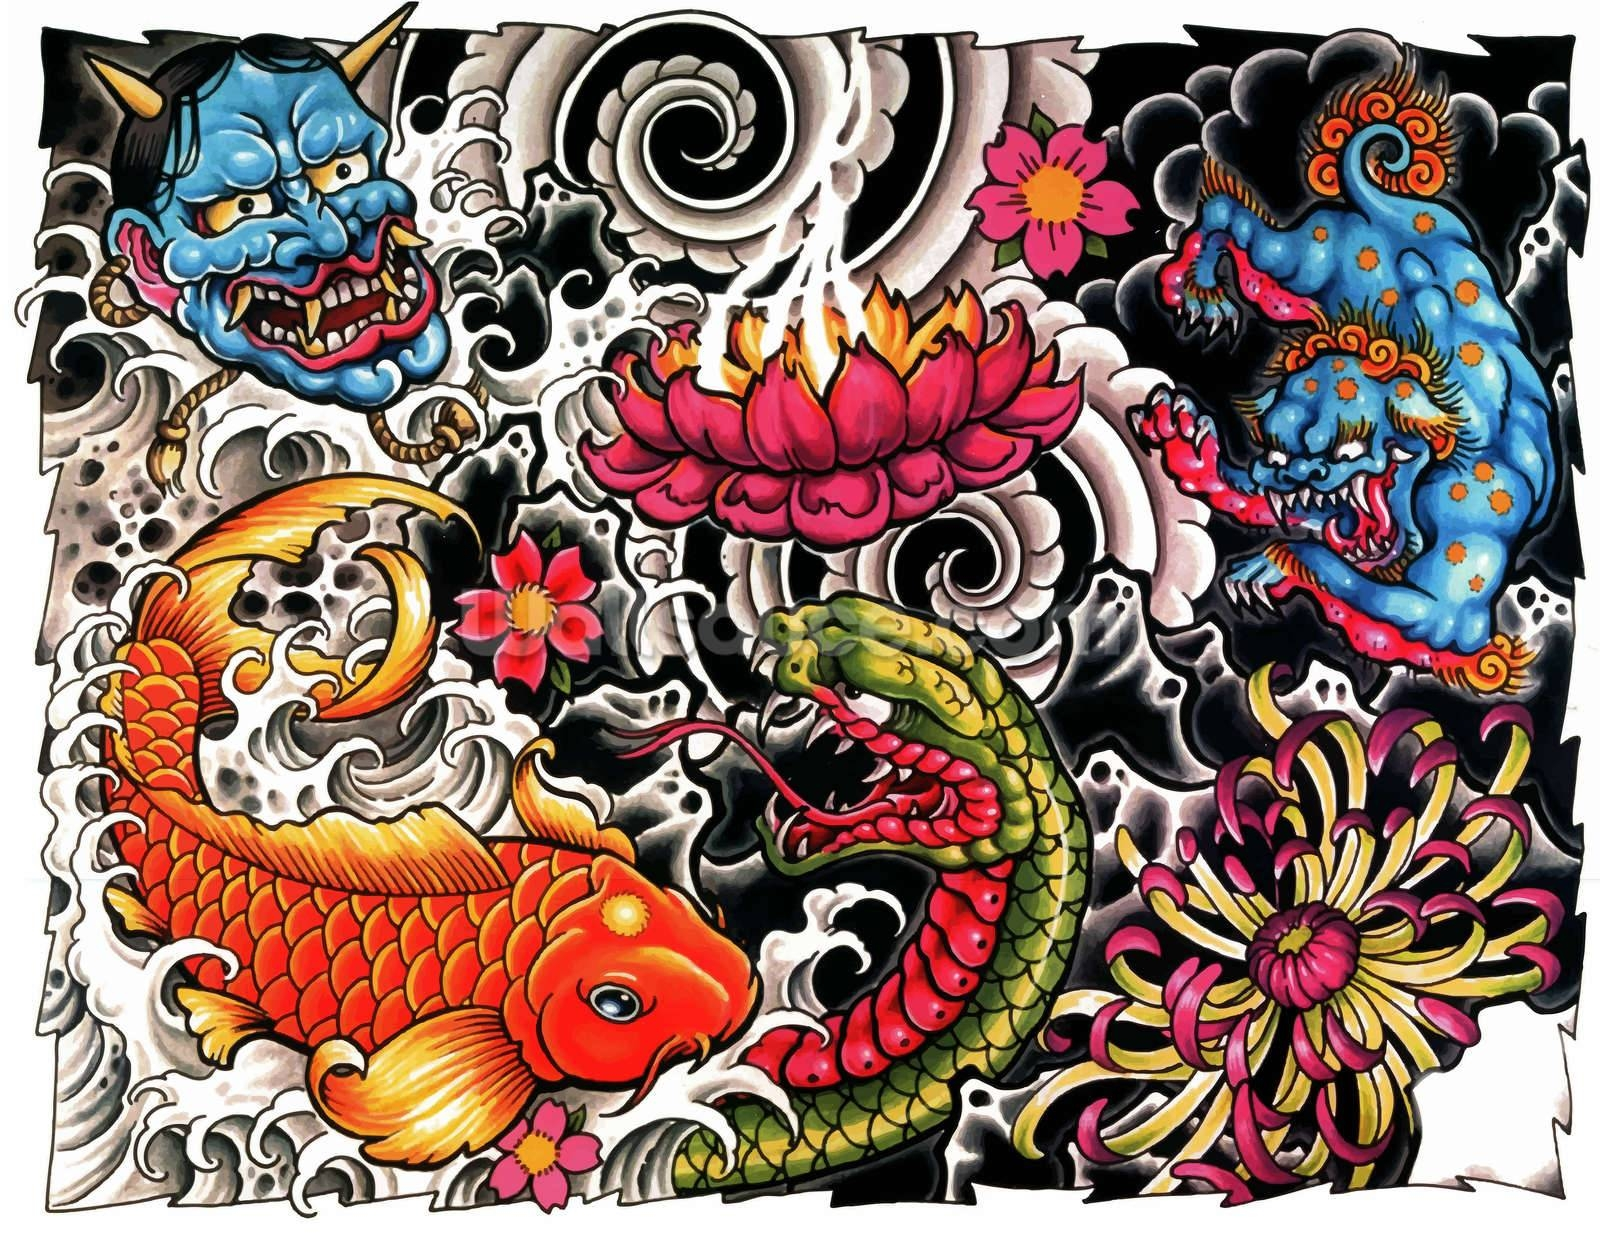 Tattoo Wallpaper Wall Mural | Wallsauce Usa throughout Most Up-to-Date Tattoo Wall Art